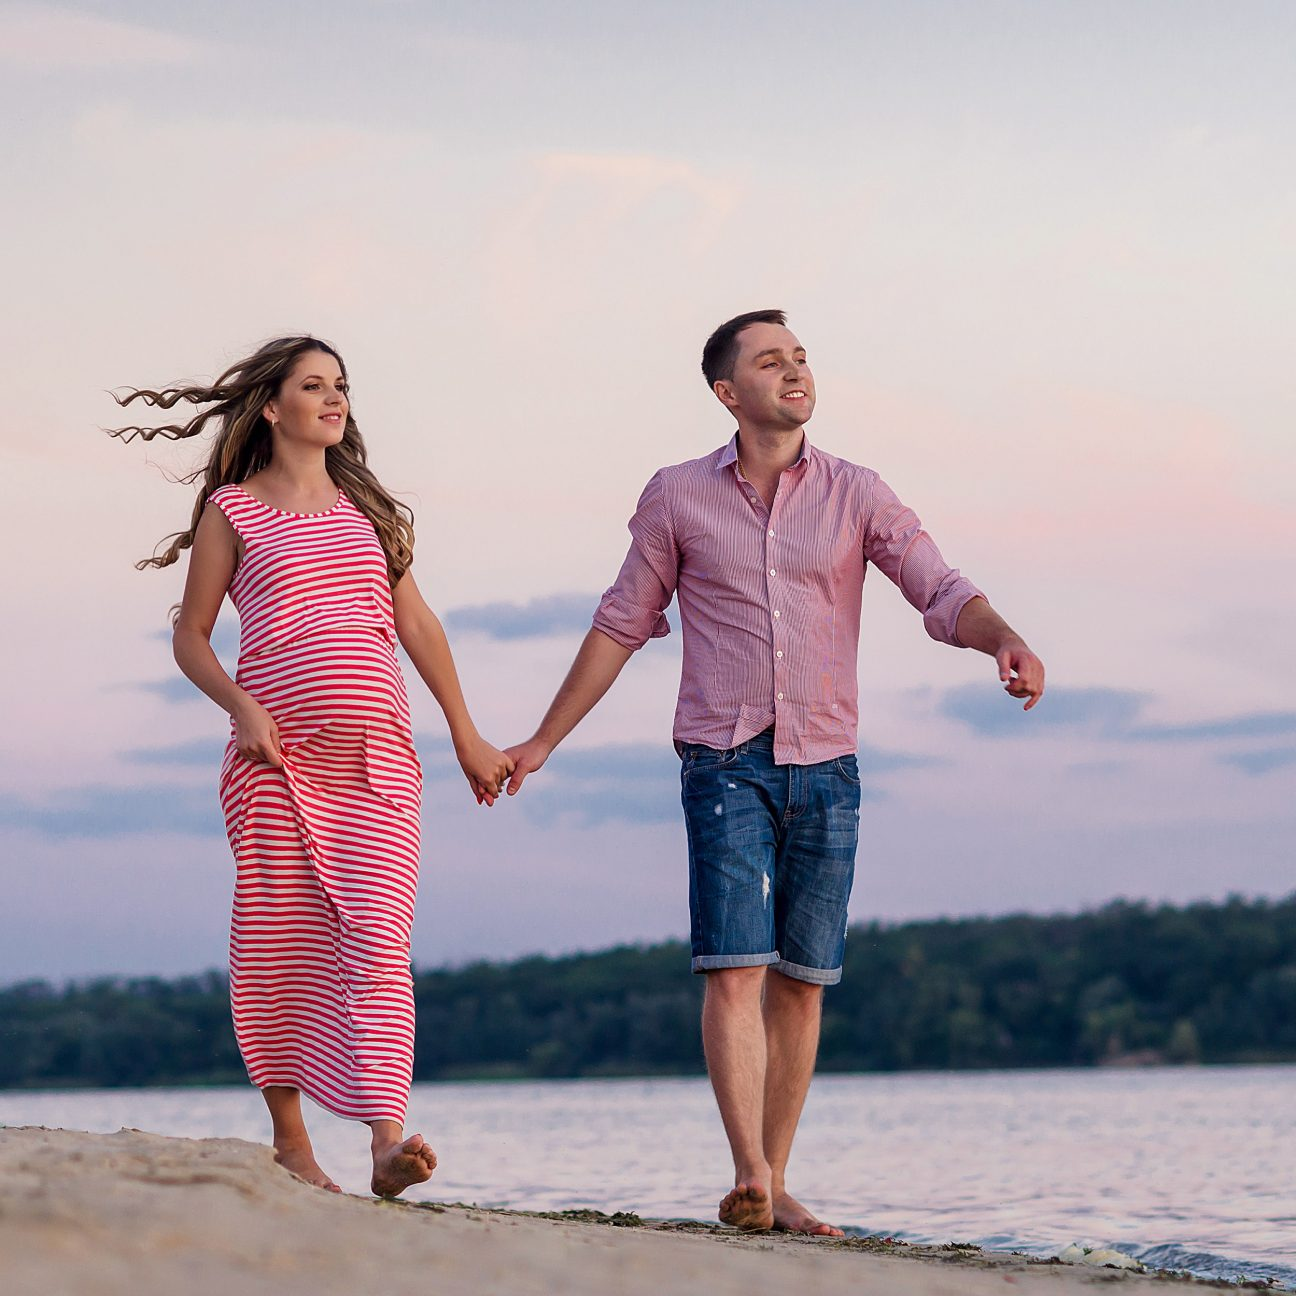 pregnant couple walking on beach at sunset